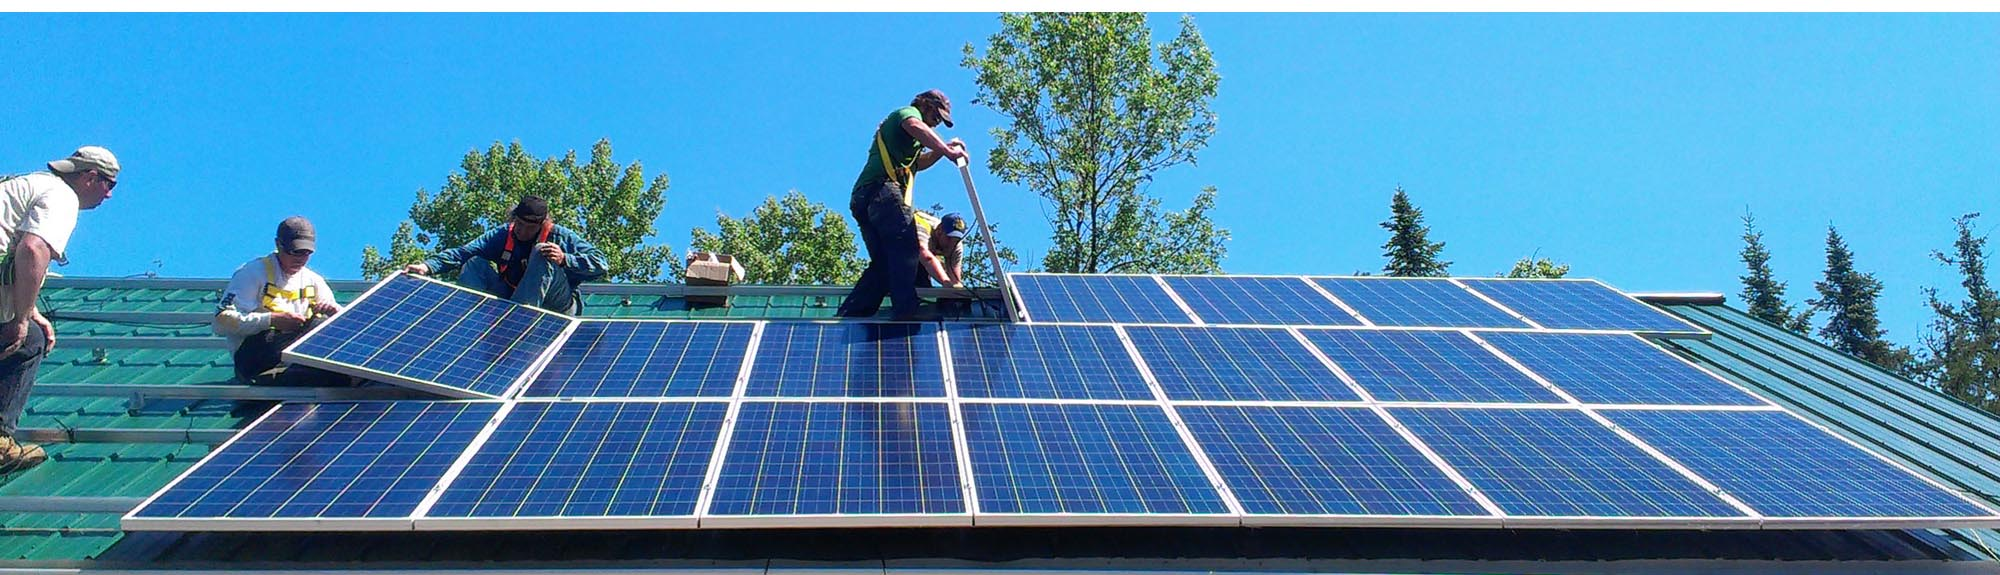 Enviro Energy Welcome To Enviro Energy Sudbury Solar